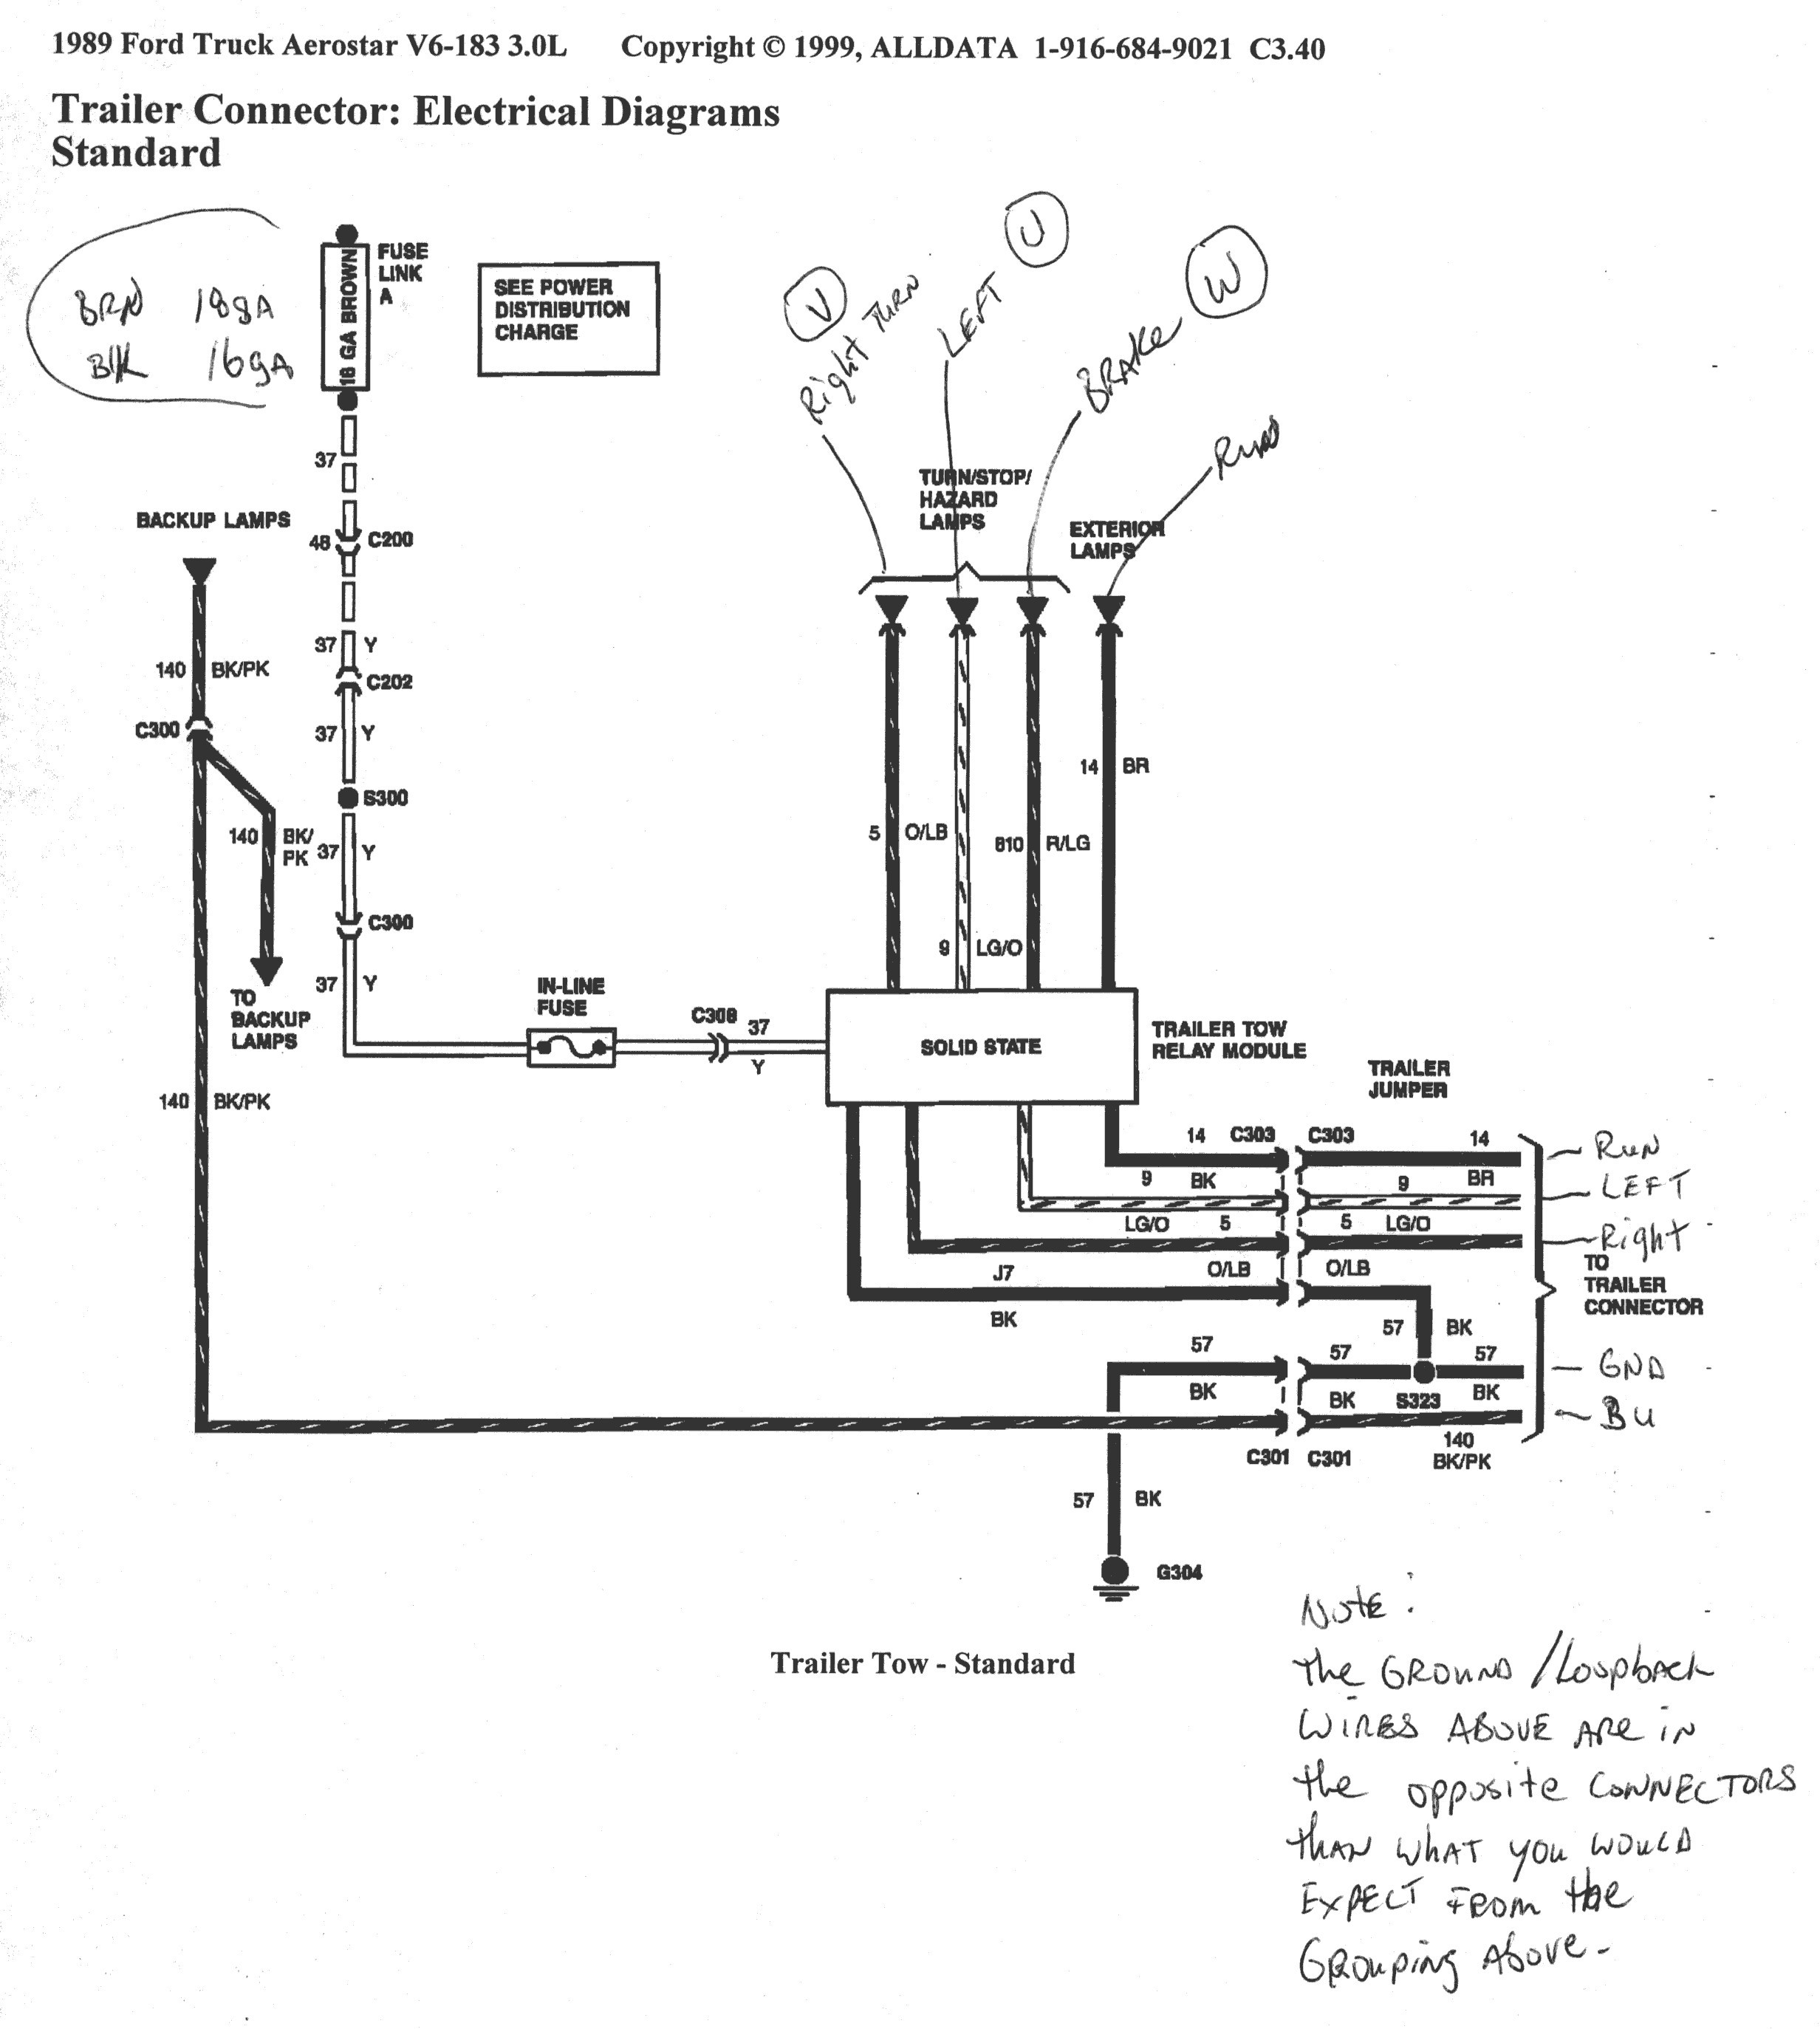 Ford F150 Wiring Harness Diagram 2000 ford F250 Trailer Wiring Harness Diagram Of Ford F150 Wiring Harness Diagram